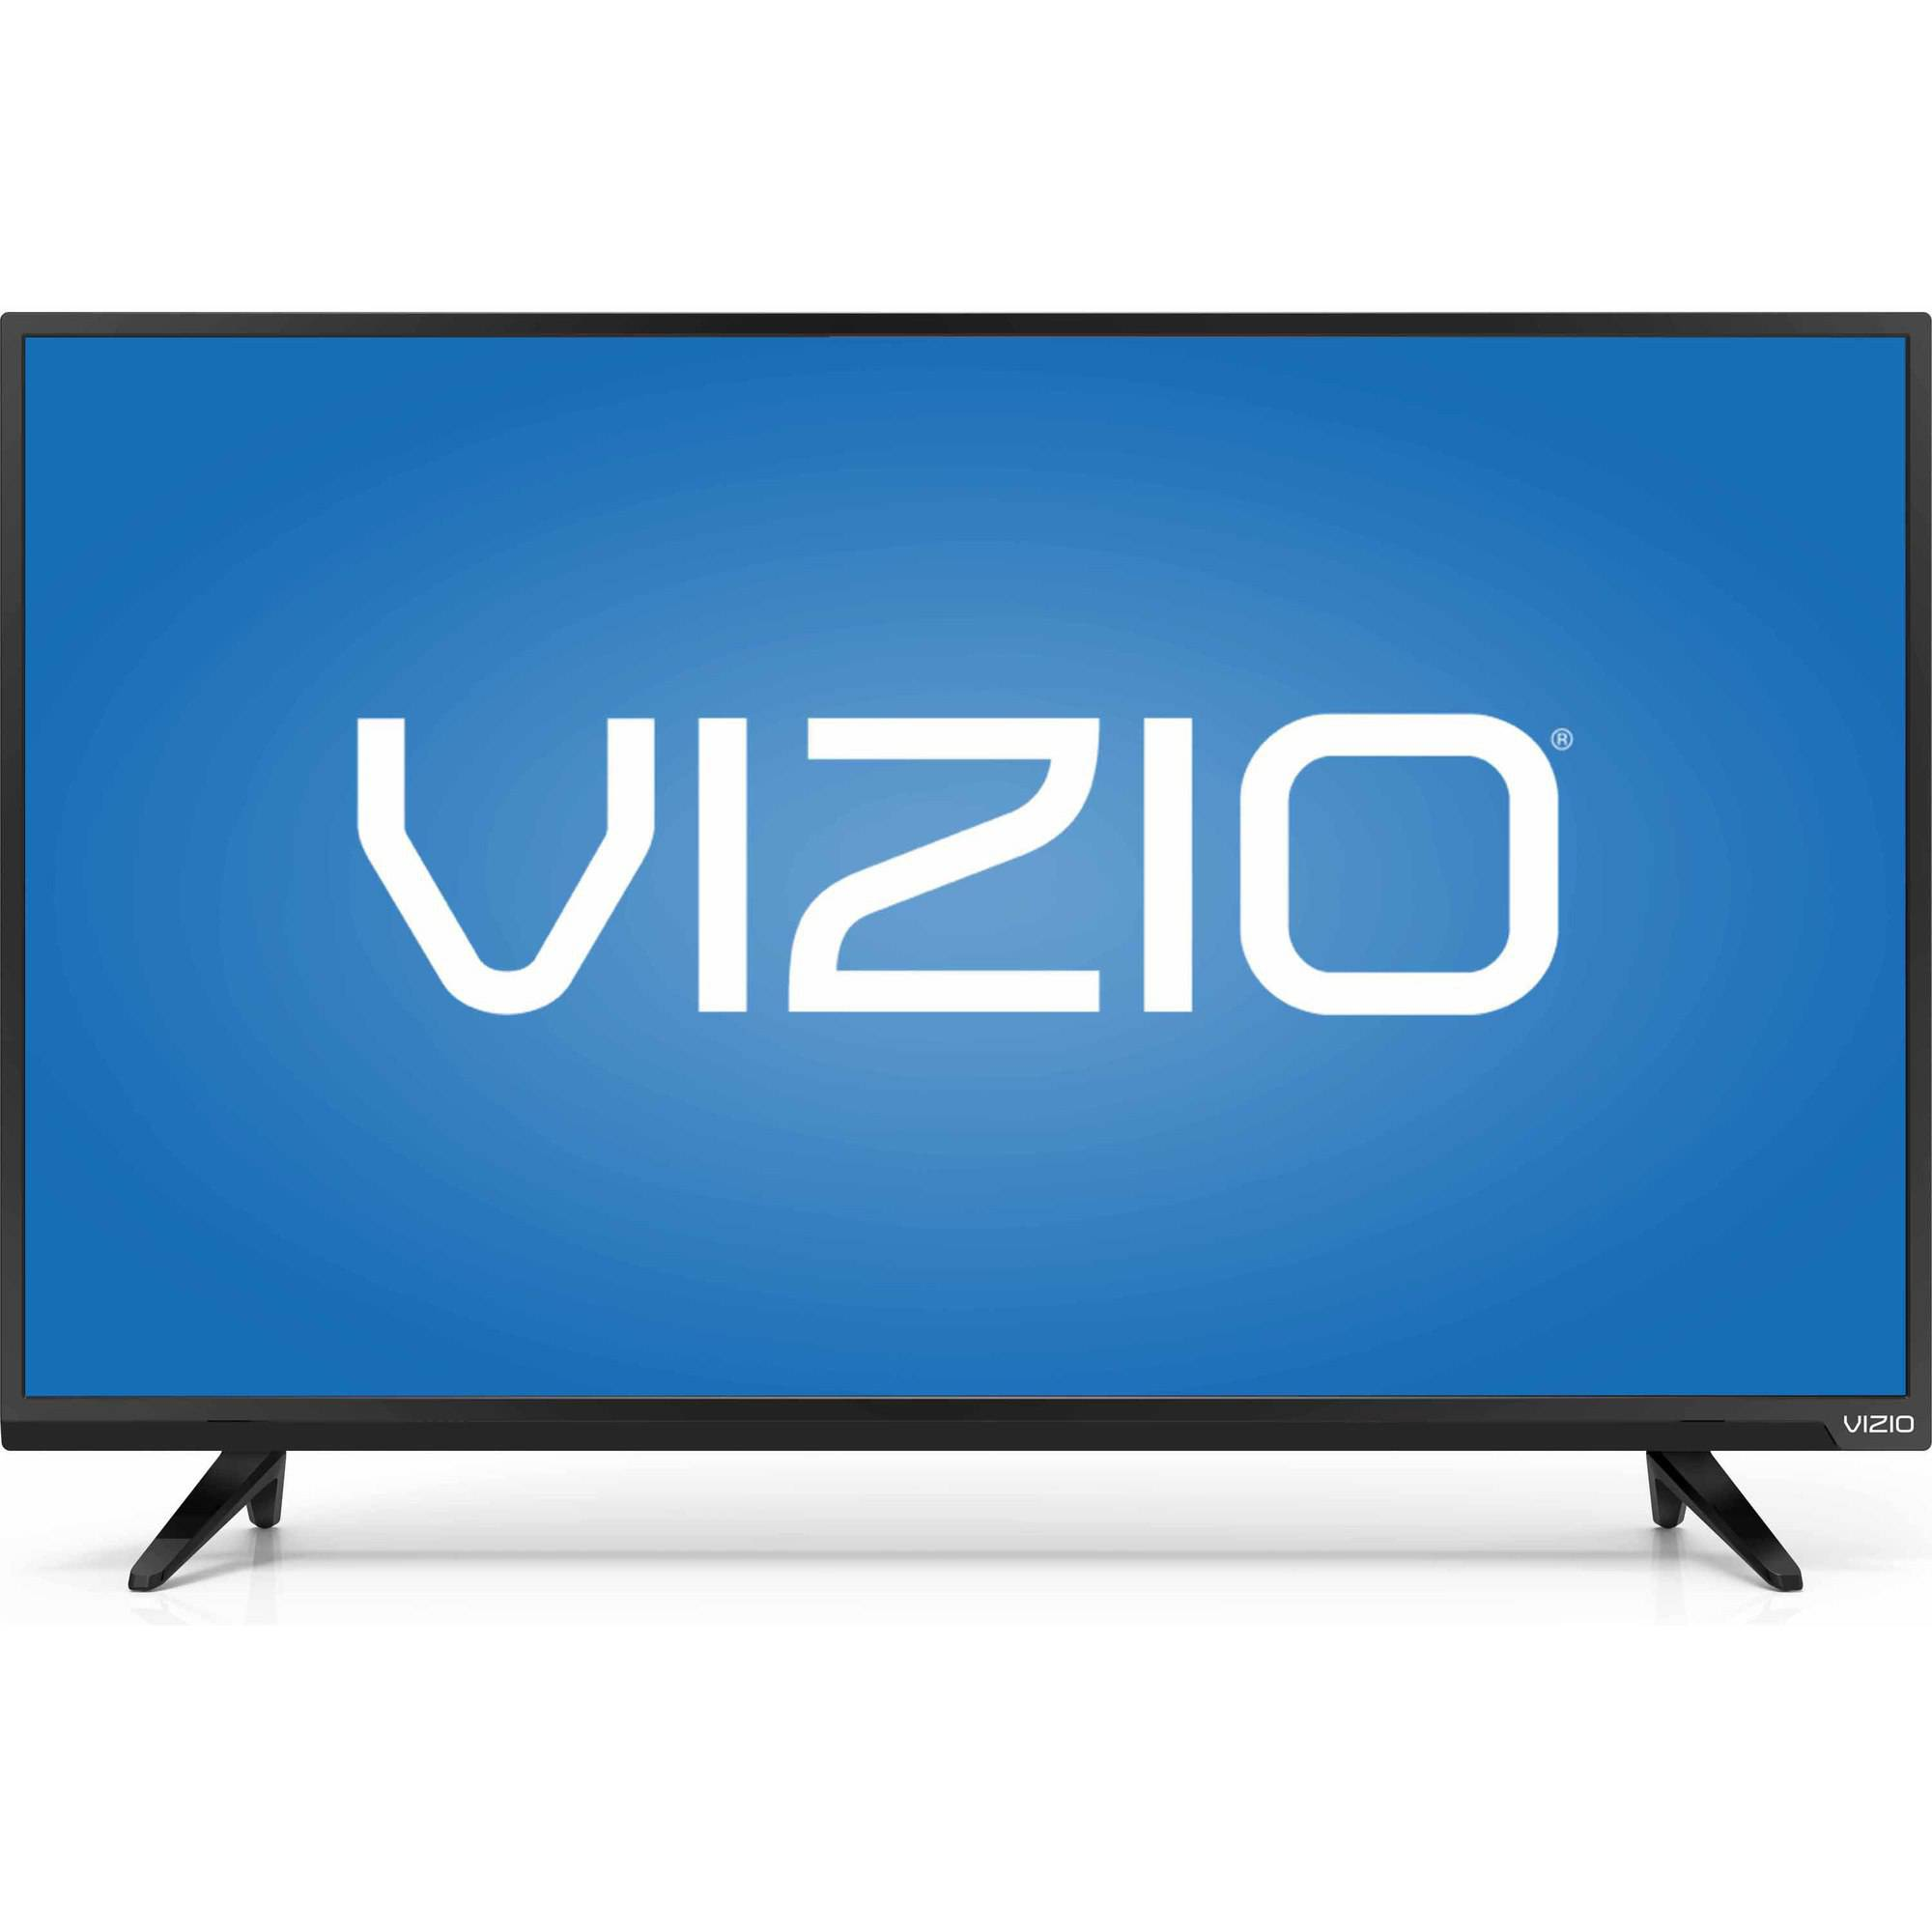 "Refurbished VIZIO D39h-C0 39"" 720p 60Hz LED HDTV"